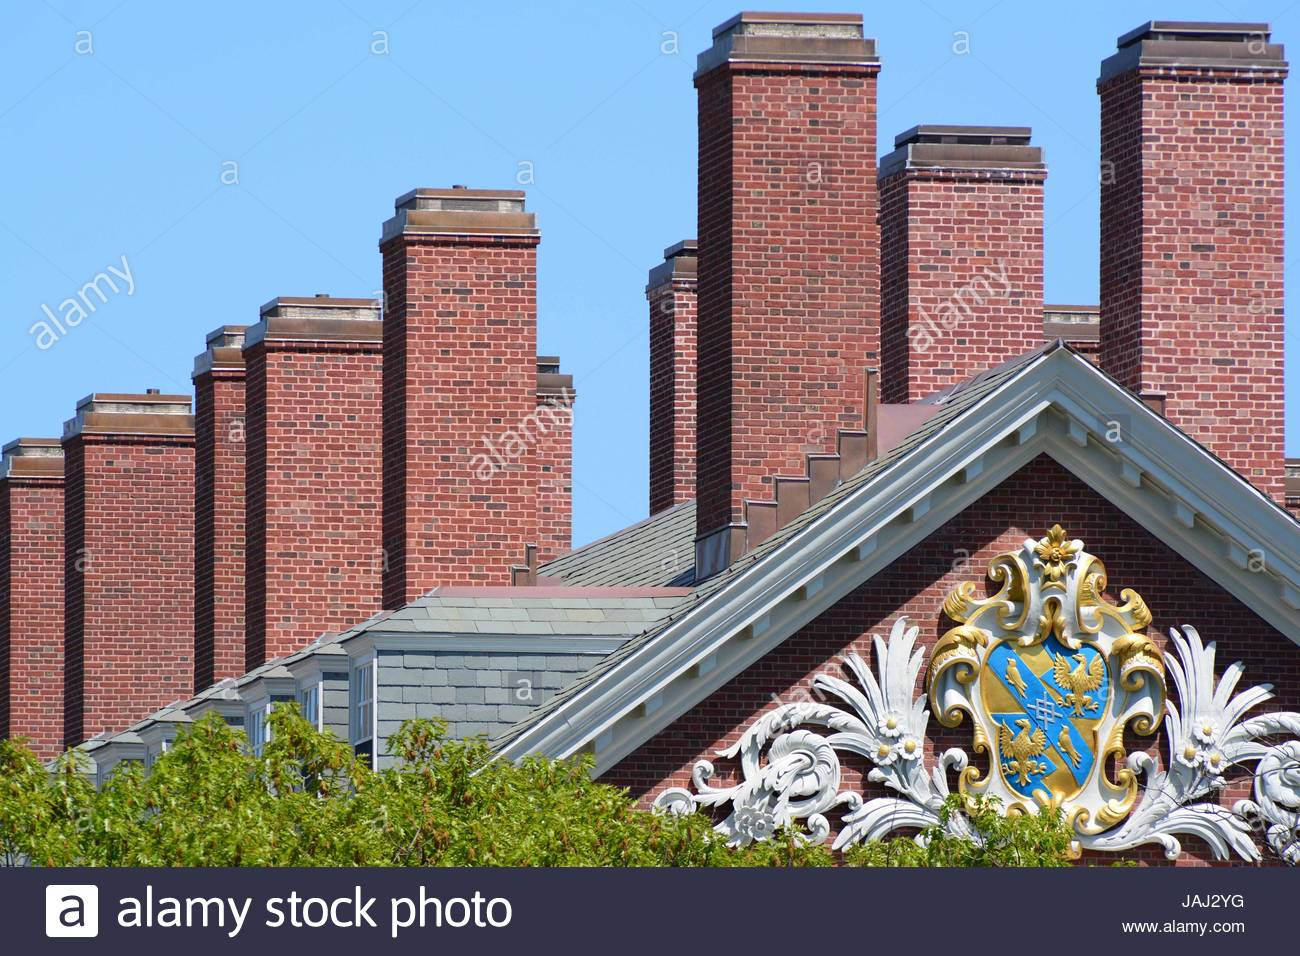 Roof and chimneys of Harvard University's Dunster House dormitory. - Stock Image